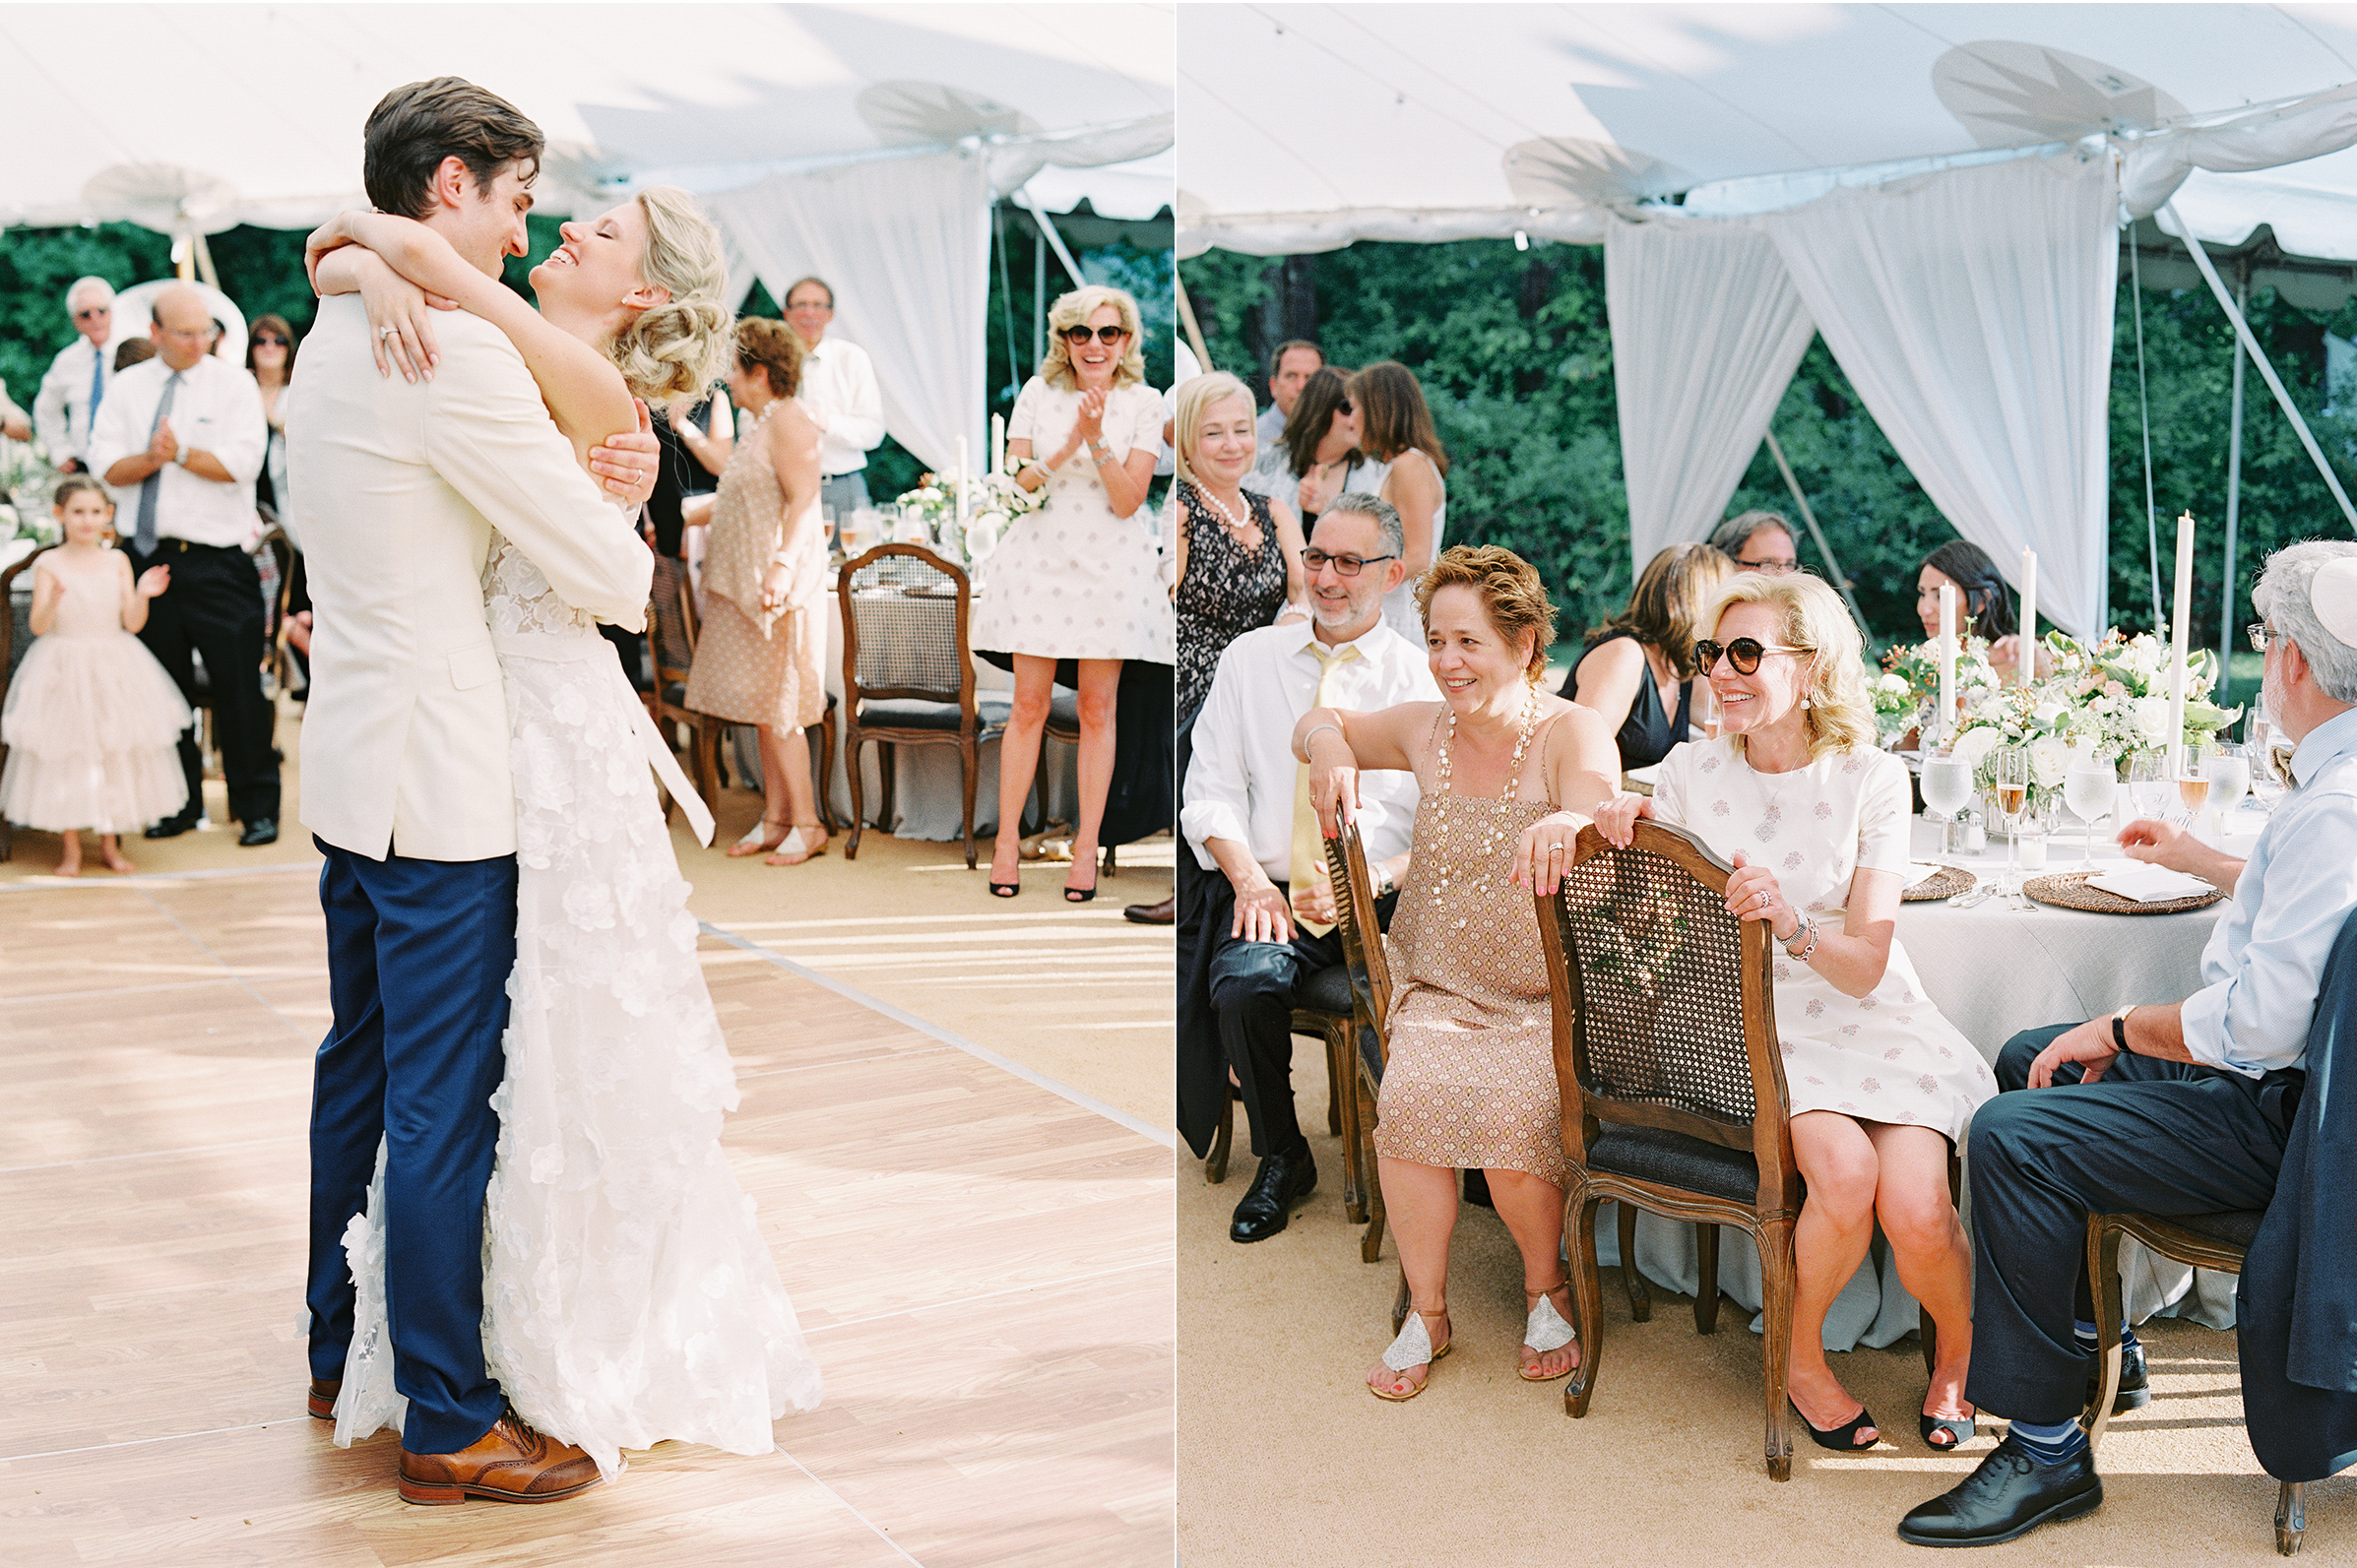 katie stoops photography-inn at perry cabin wedding43.jpg